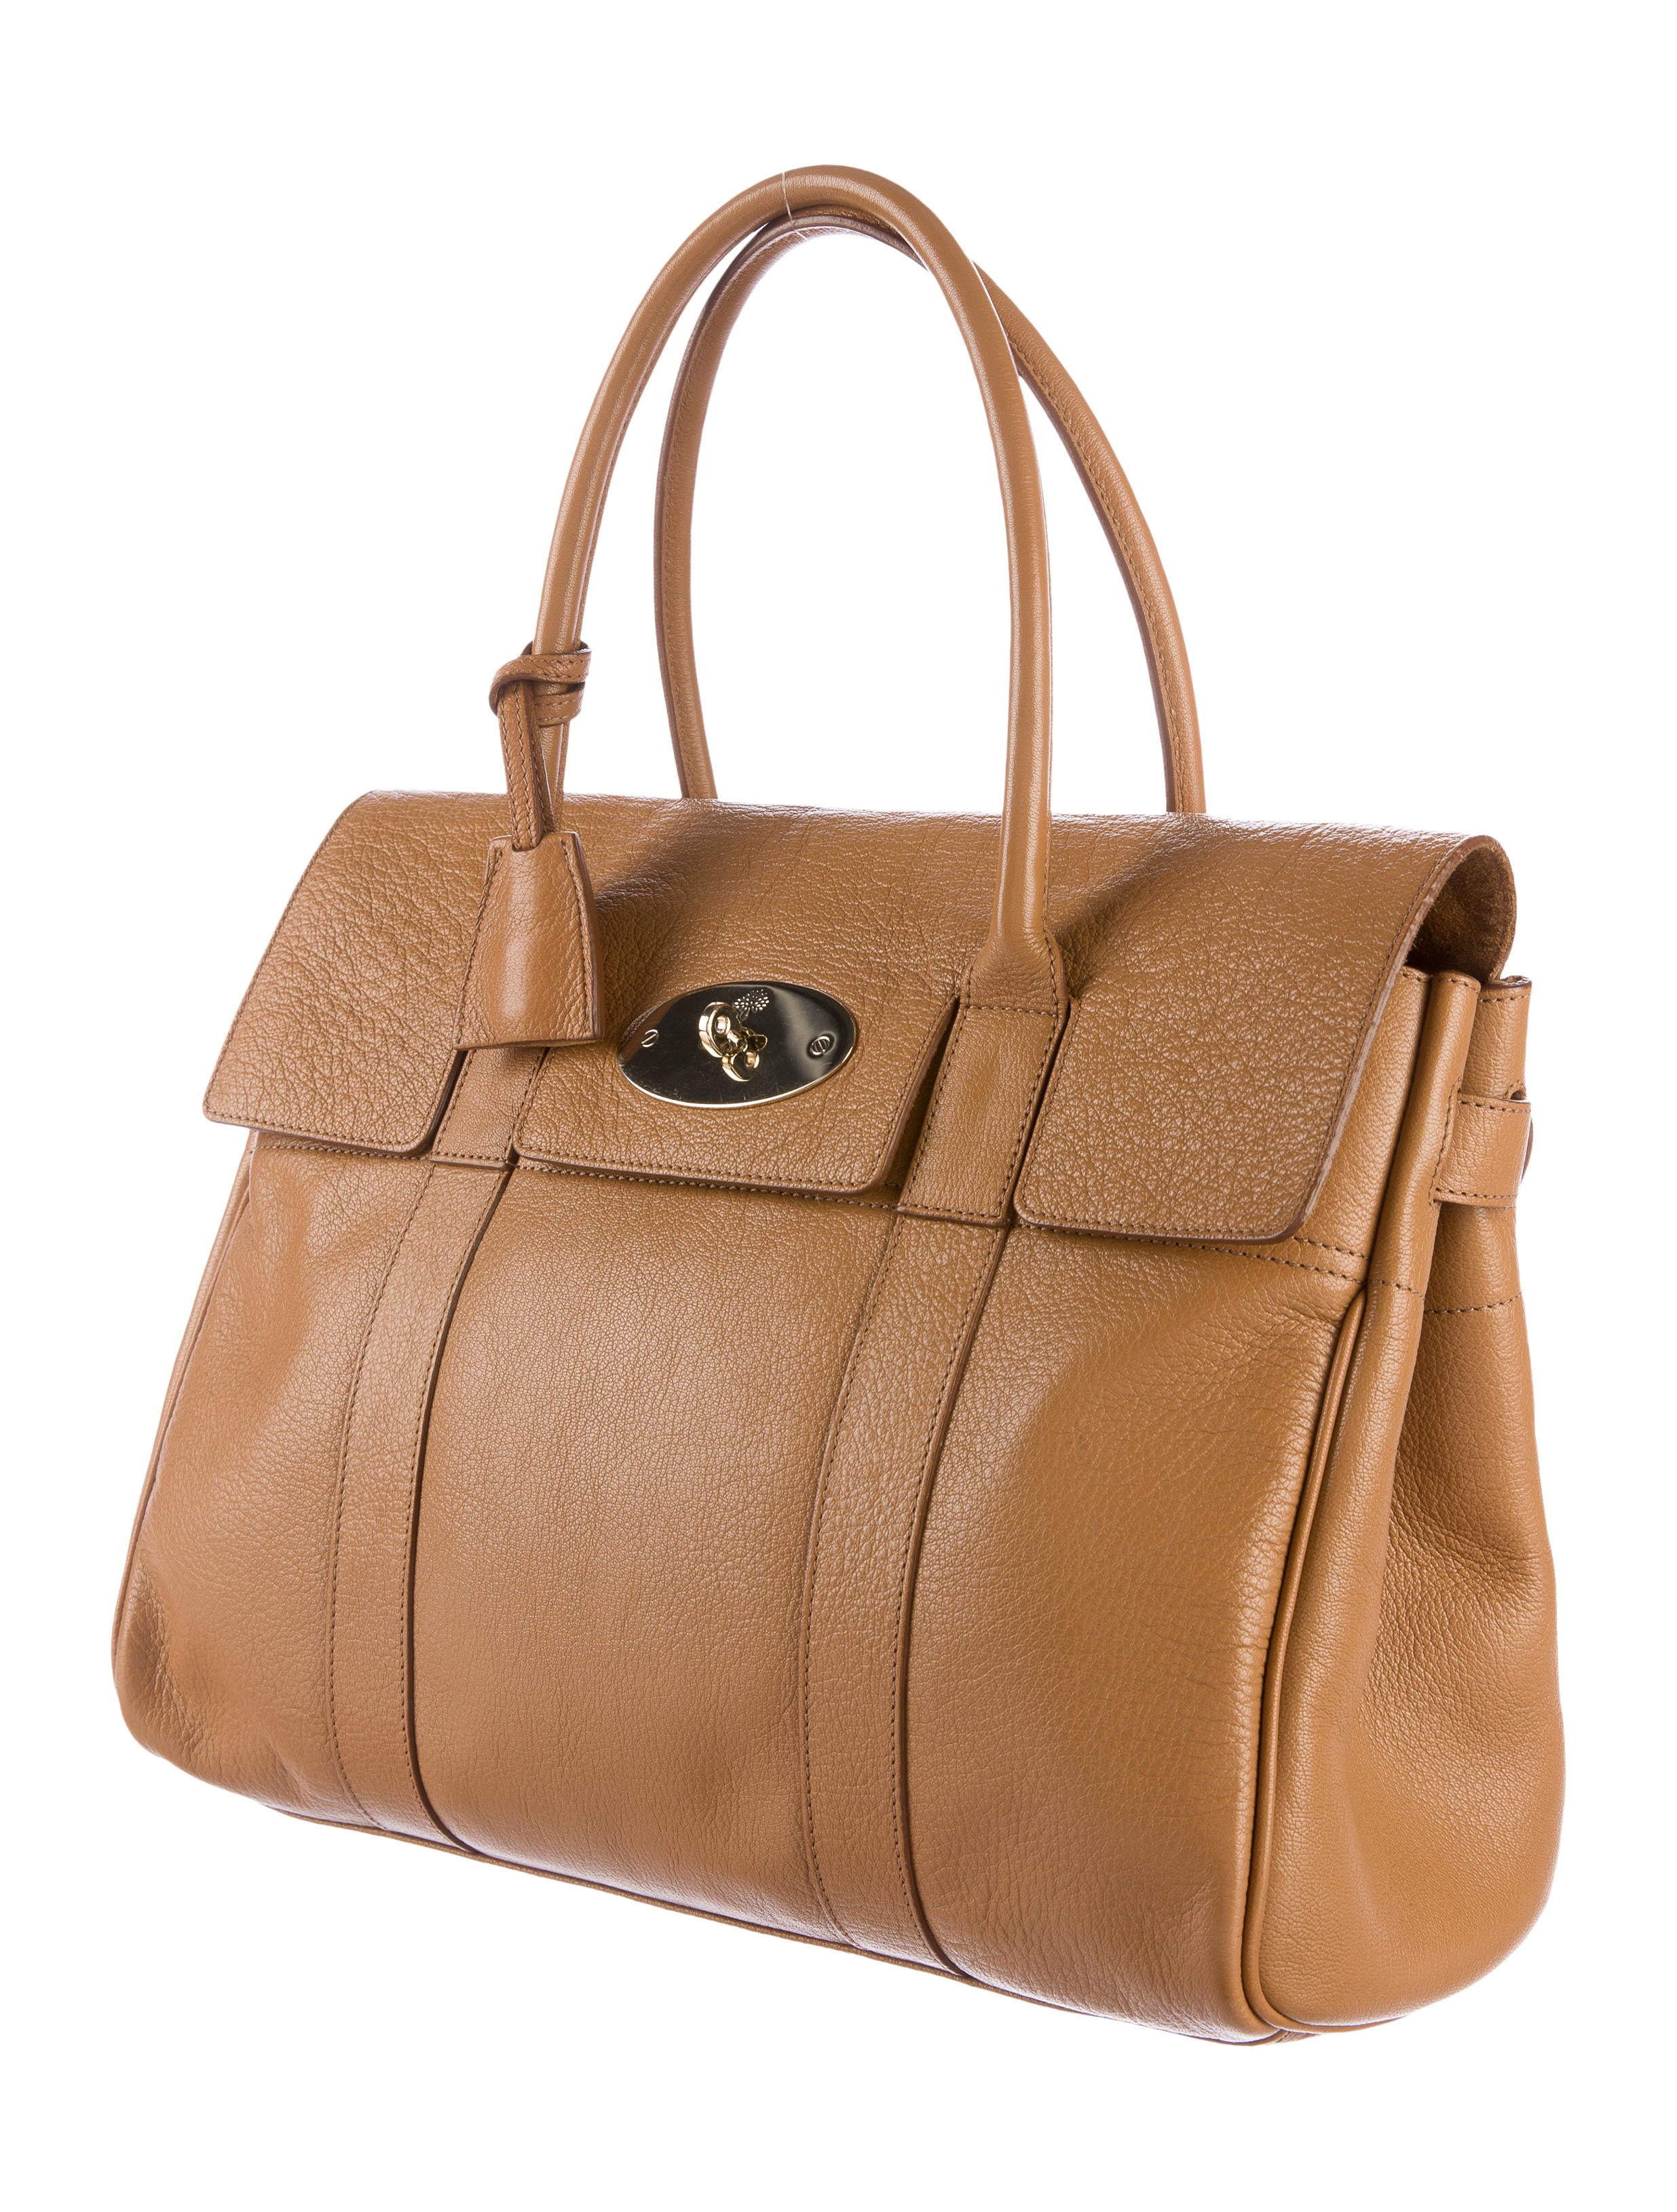 Mulberry leather bayswater bag handbags mul22458 the for The bayswater